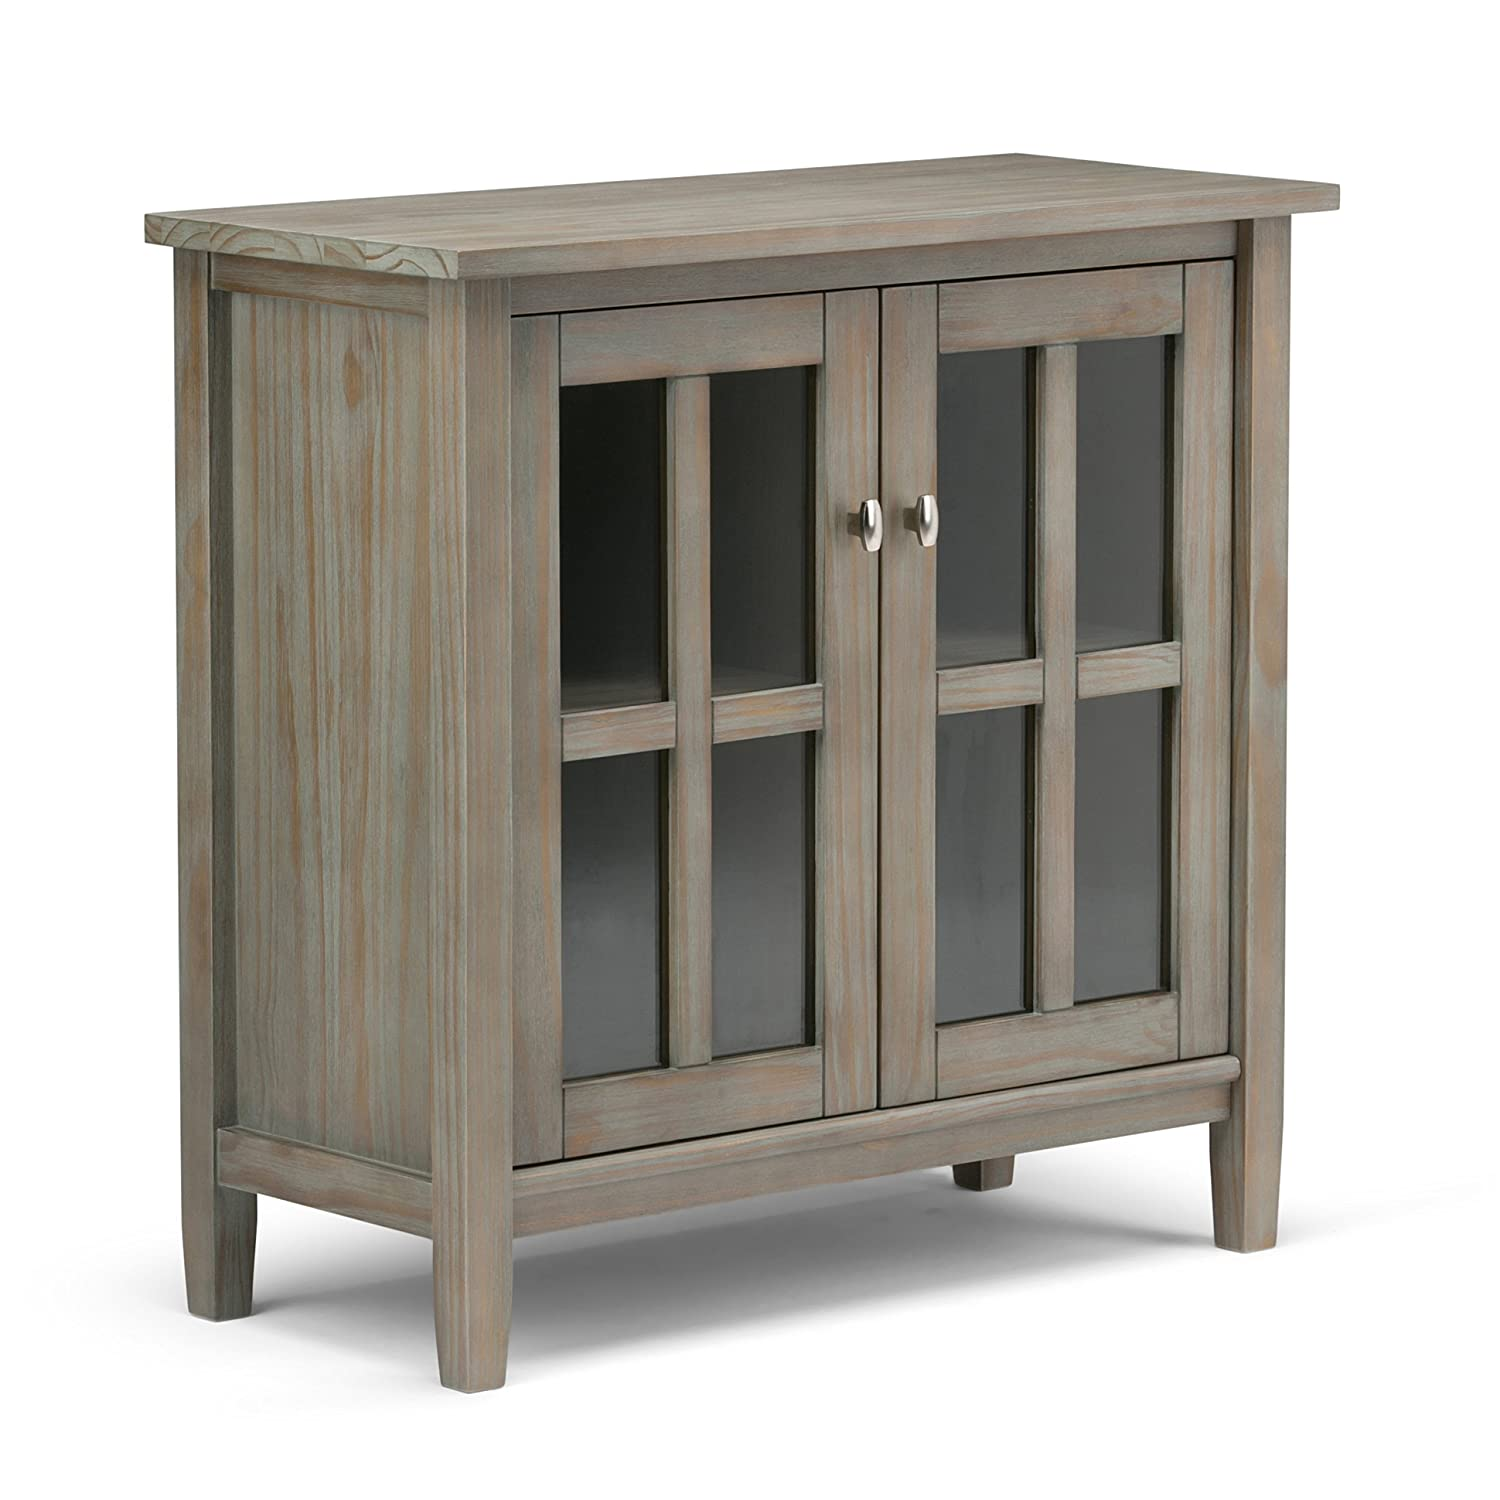 Simpli Home AXWSH009-GR Warm Shaker Solid Wood 32 inch Wide Rustic Low Storage Cabinet in Distressed Grey